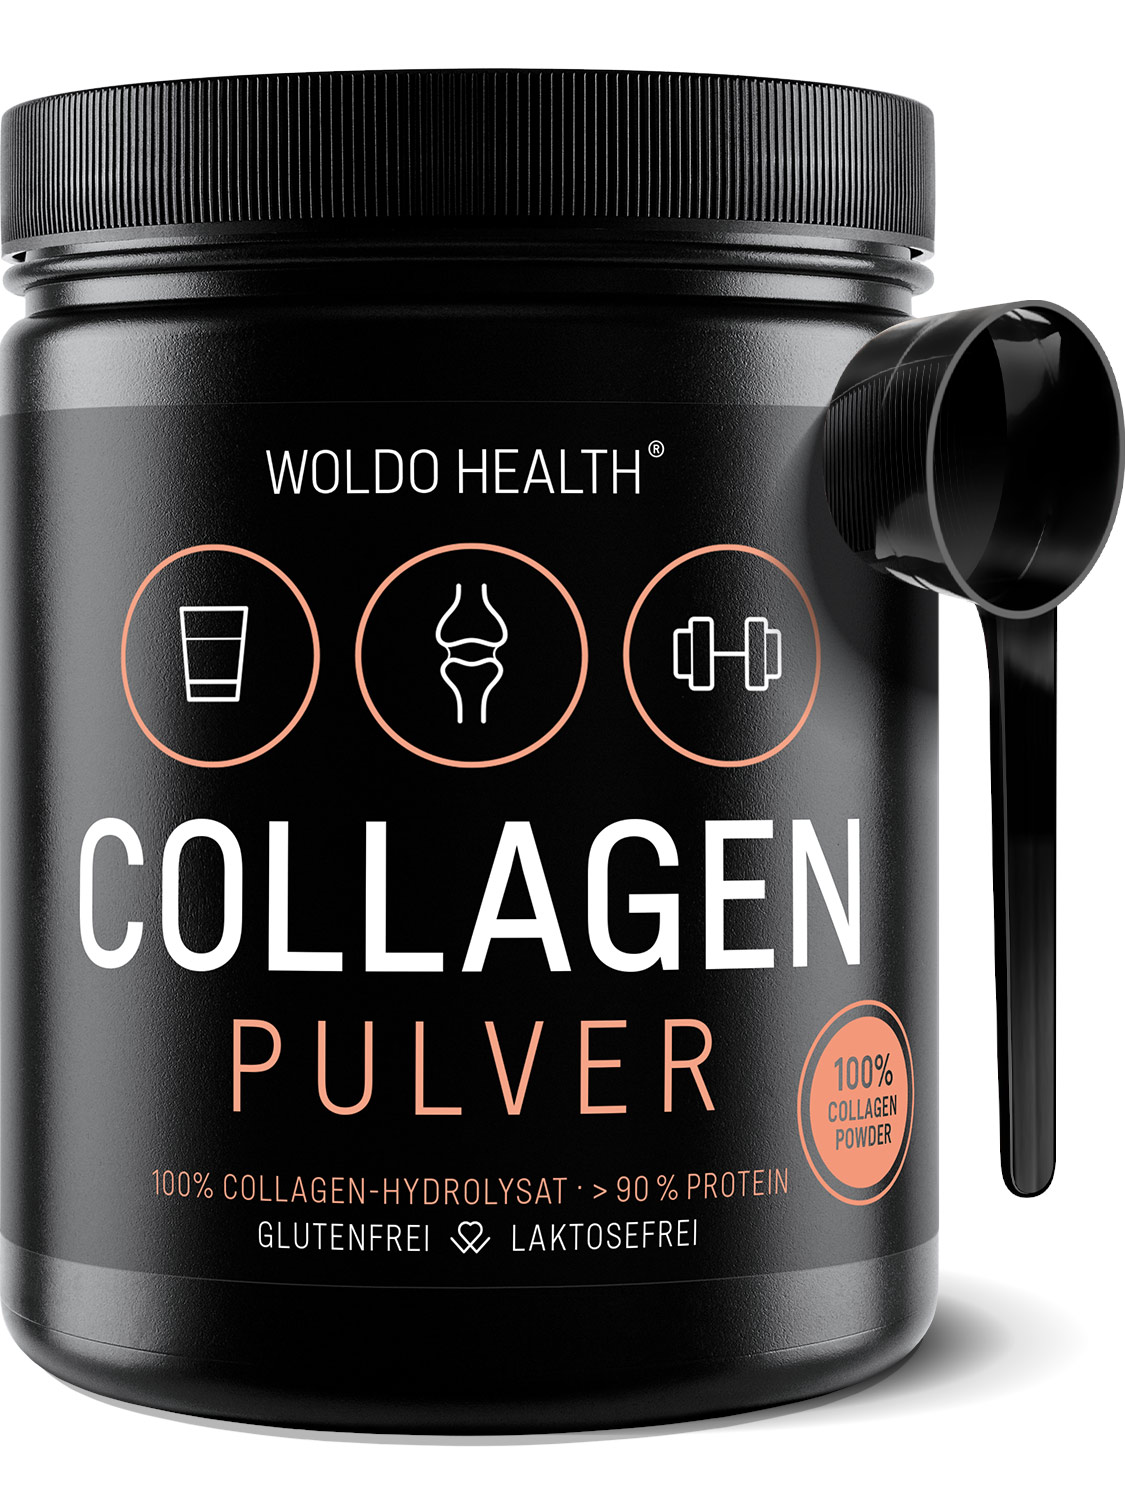 WoldoHealth_170901_Collagen_Dose_Amazon_01_Front-Scoof